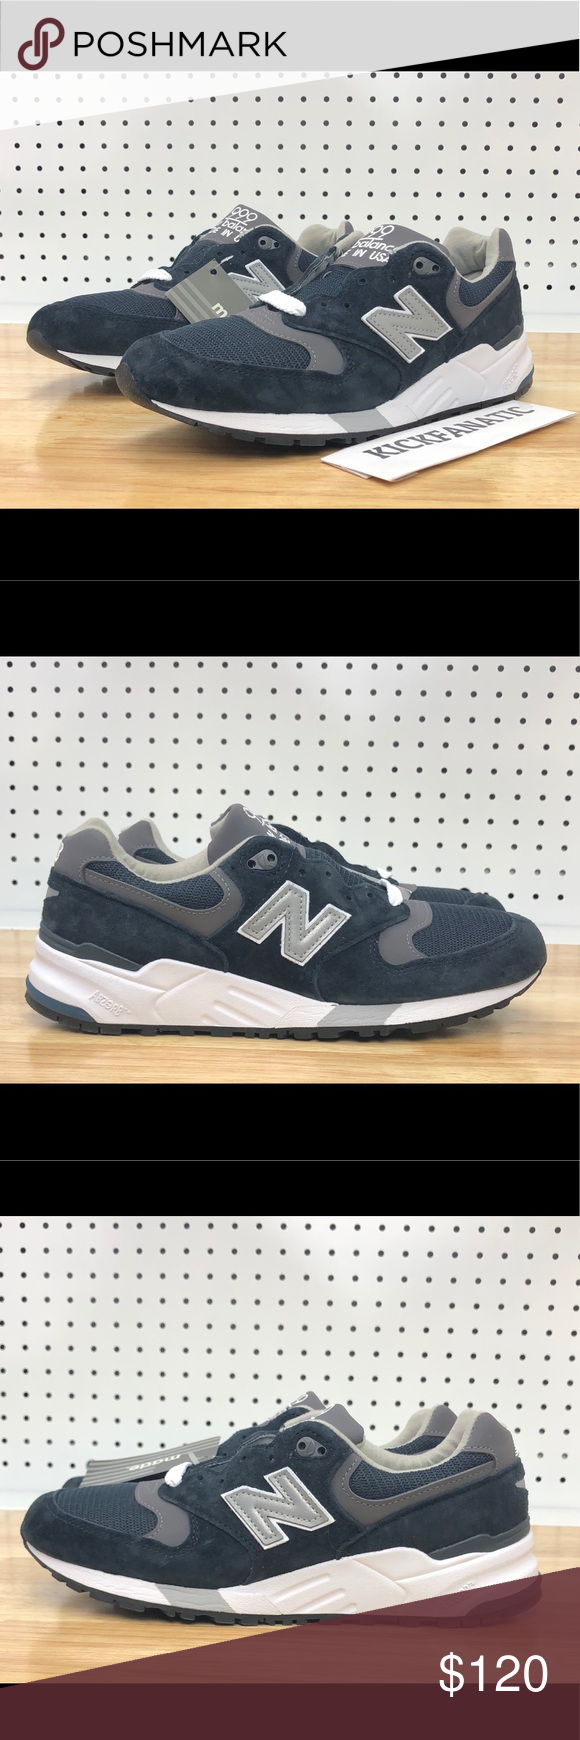 305c2787804d5 New Balance 999 M999CBL Made In USA Navy Shoes New Balance 999 M999CBL Made  In USA